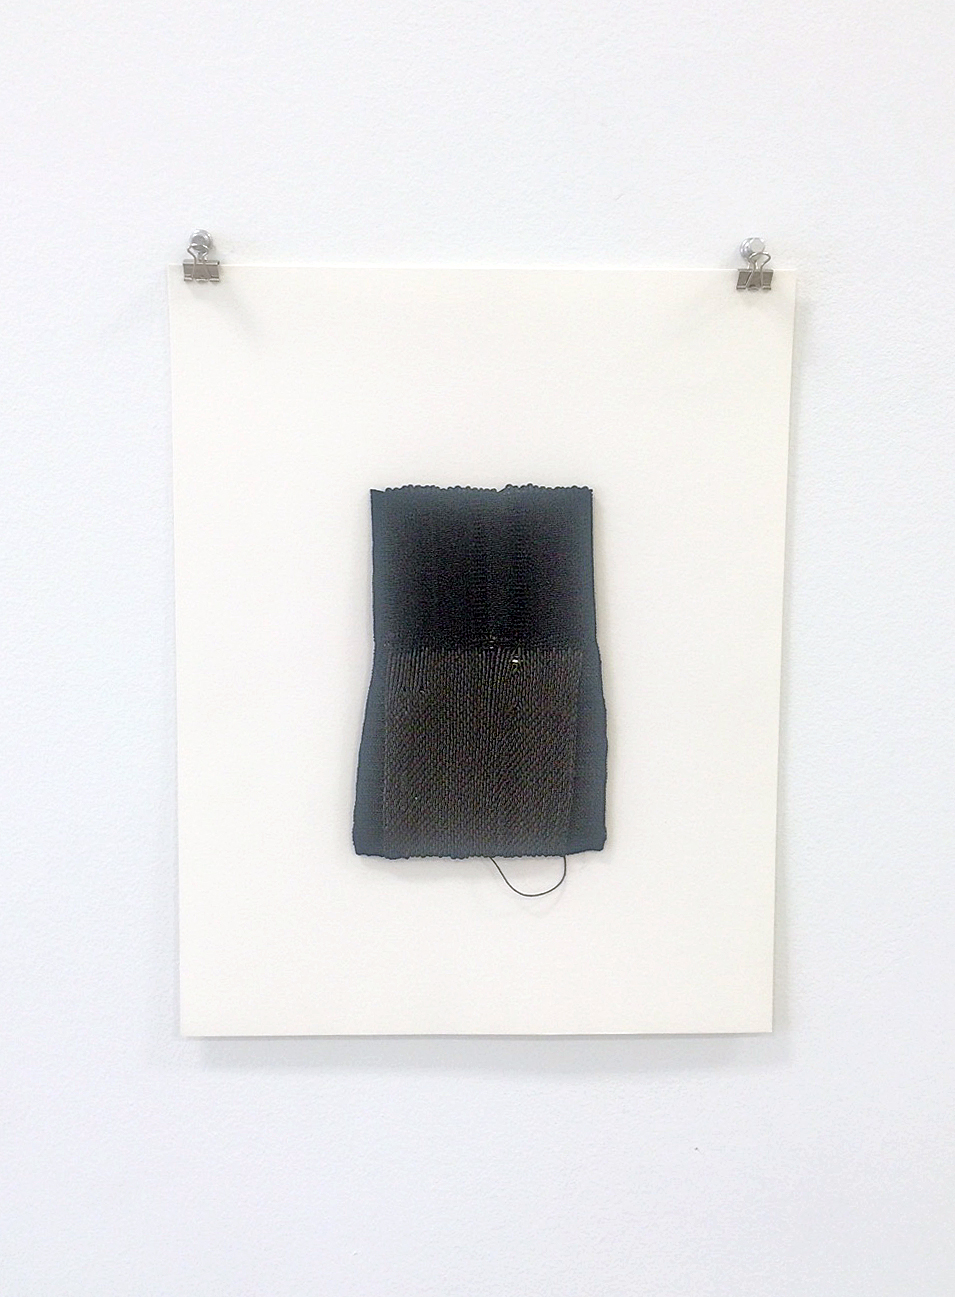 image-2-a-textile-mounted-on-paper-elizabeth-youngblood